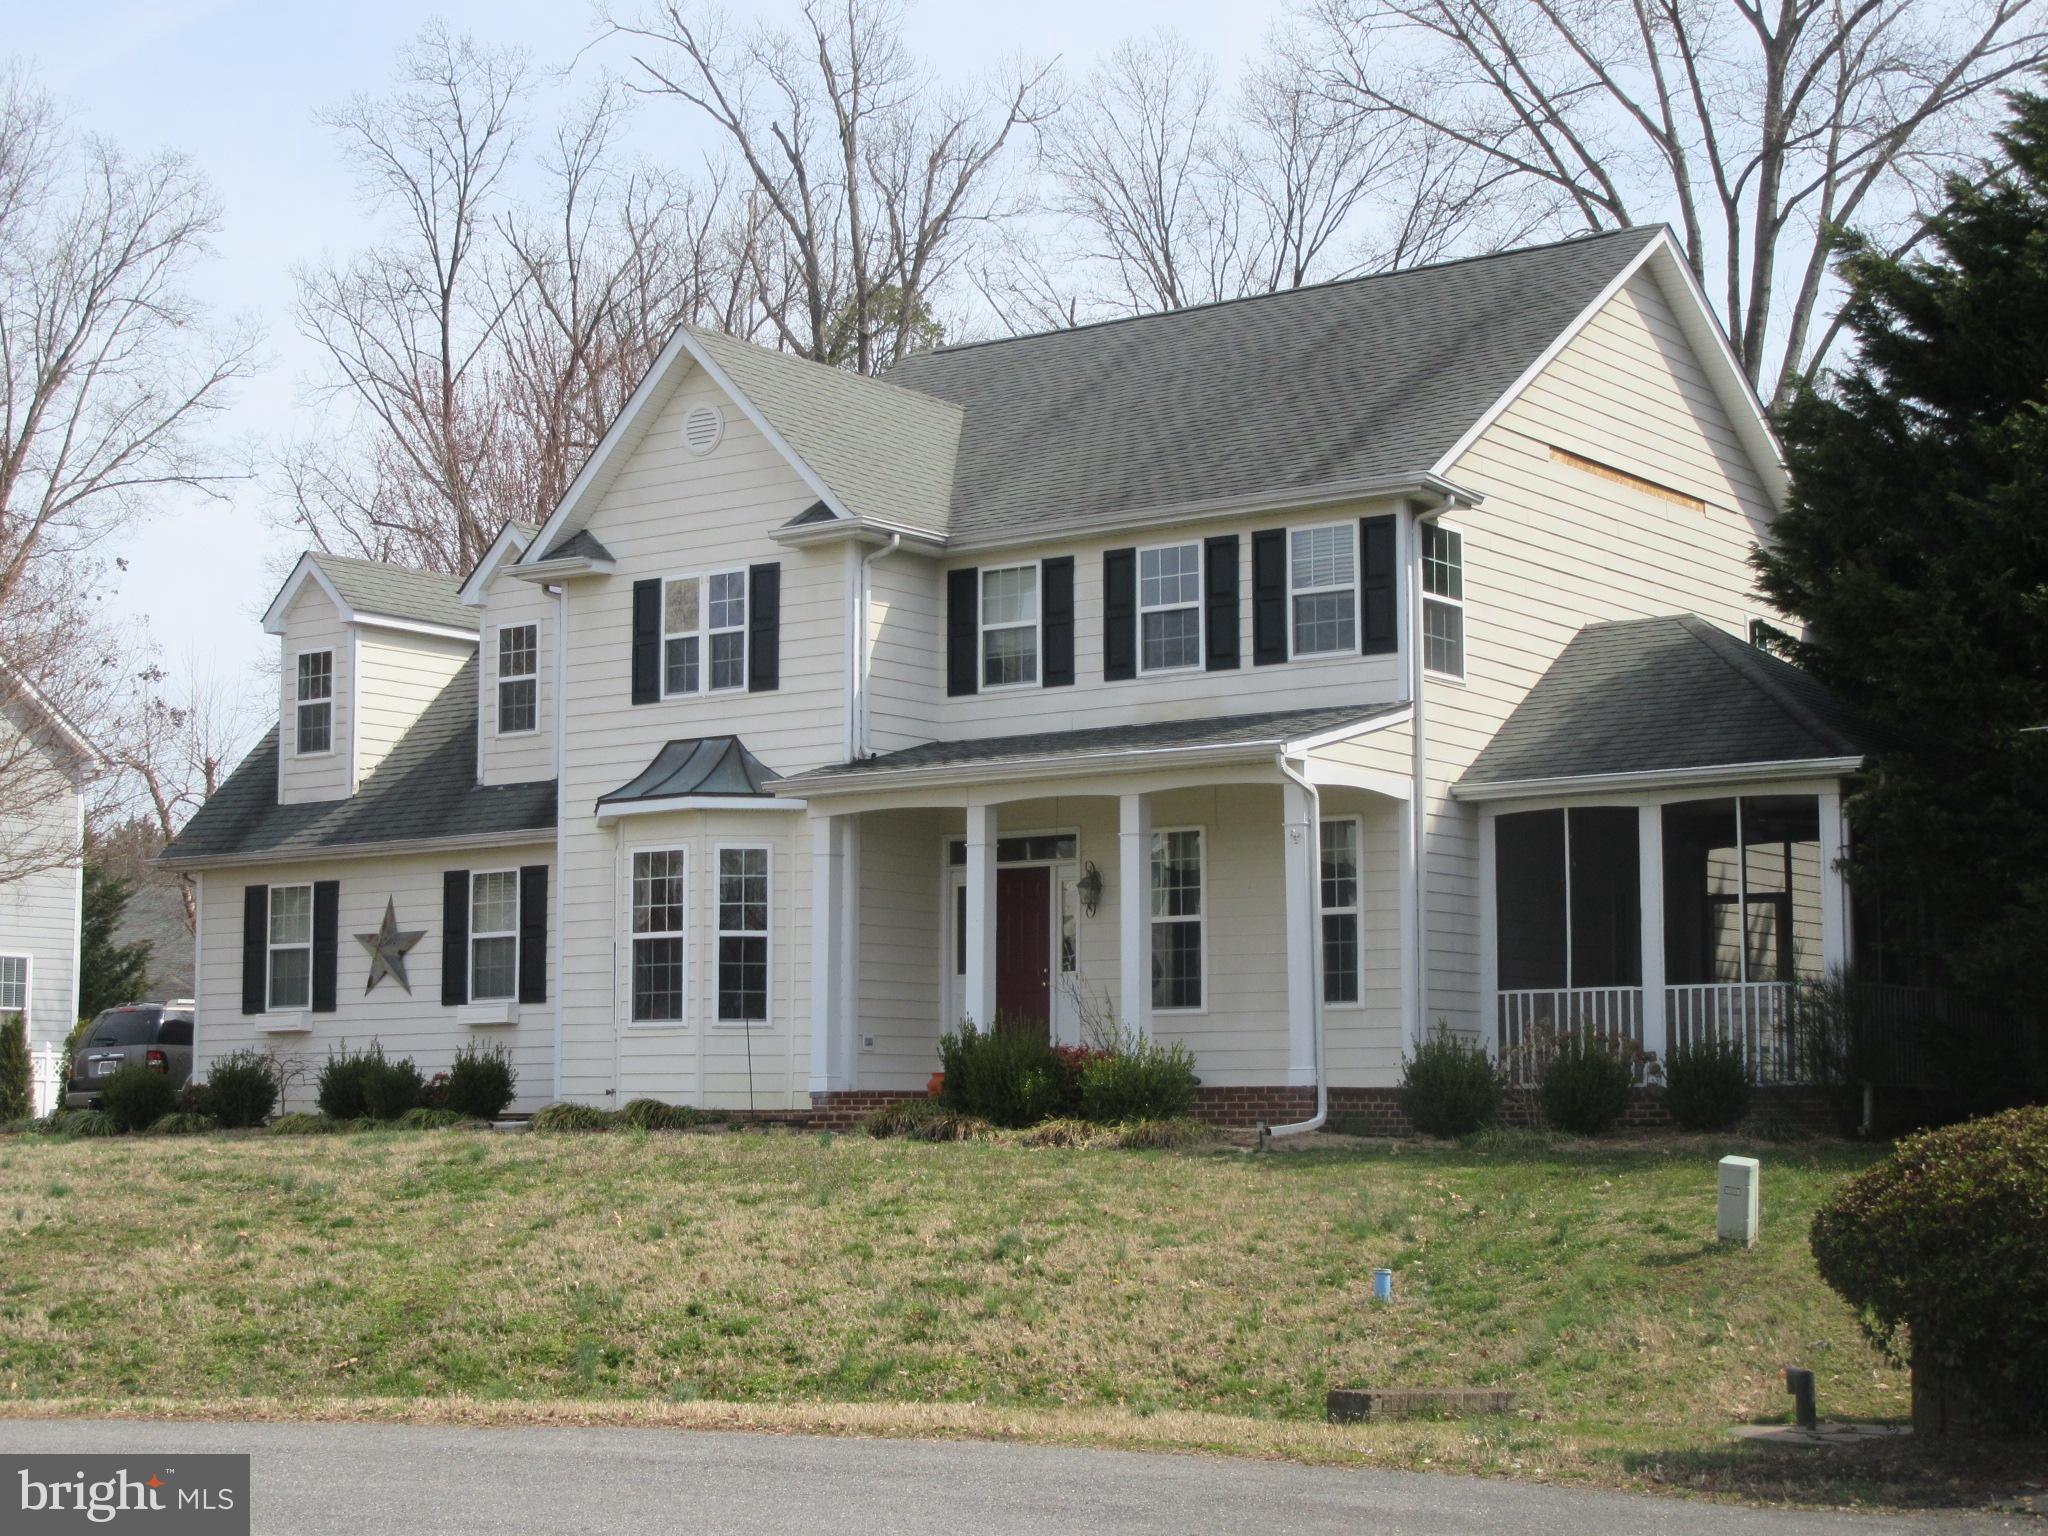 11615 BACHELORS HOPE COURT, SWAN POINT, MD 20645